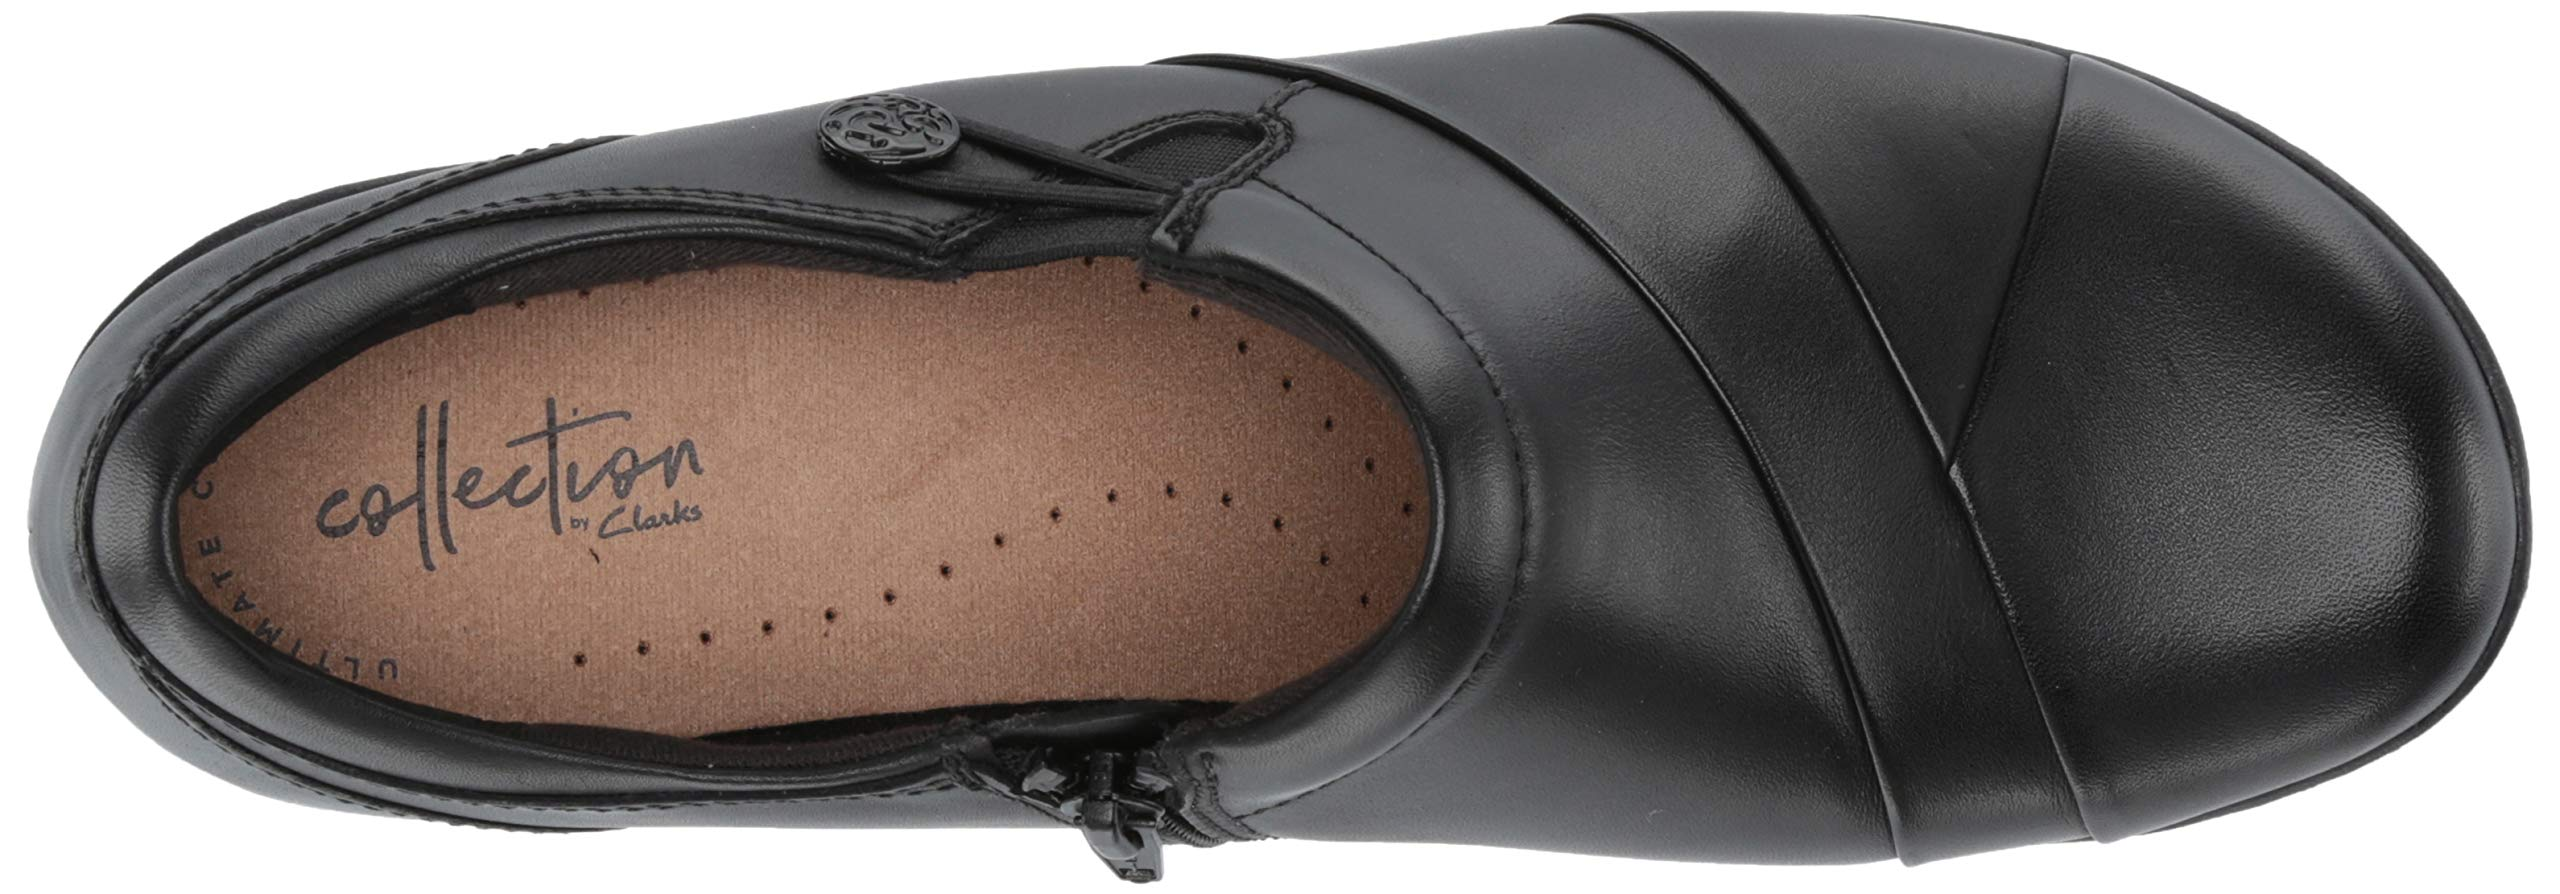 Clarks Women's Channing Ann Slip-On Loafer